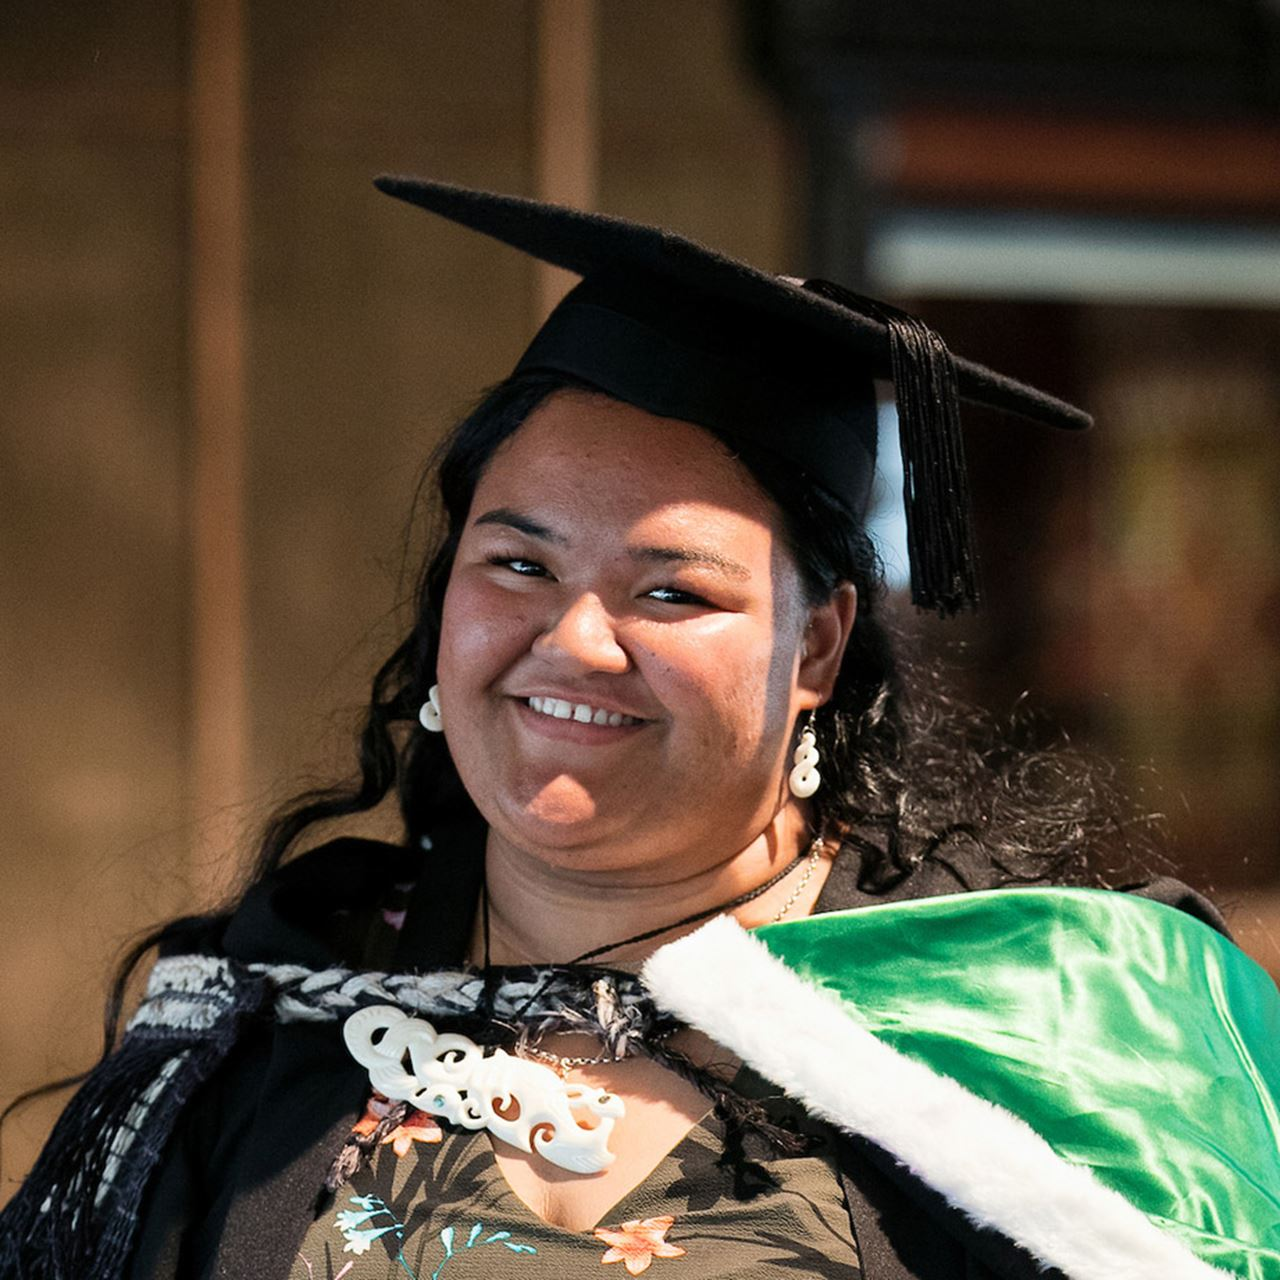 Te Rumate Mahutoto, Bachelor of Education - Teaching graduate